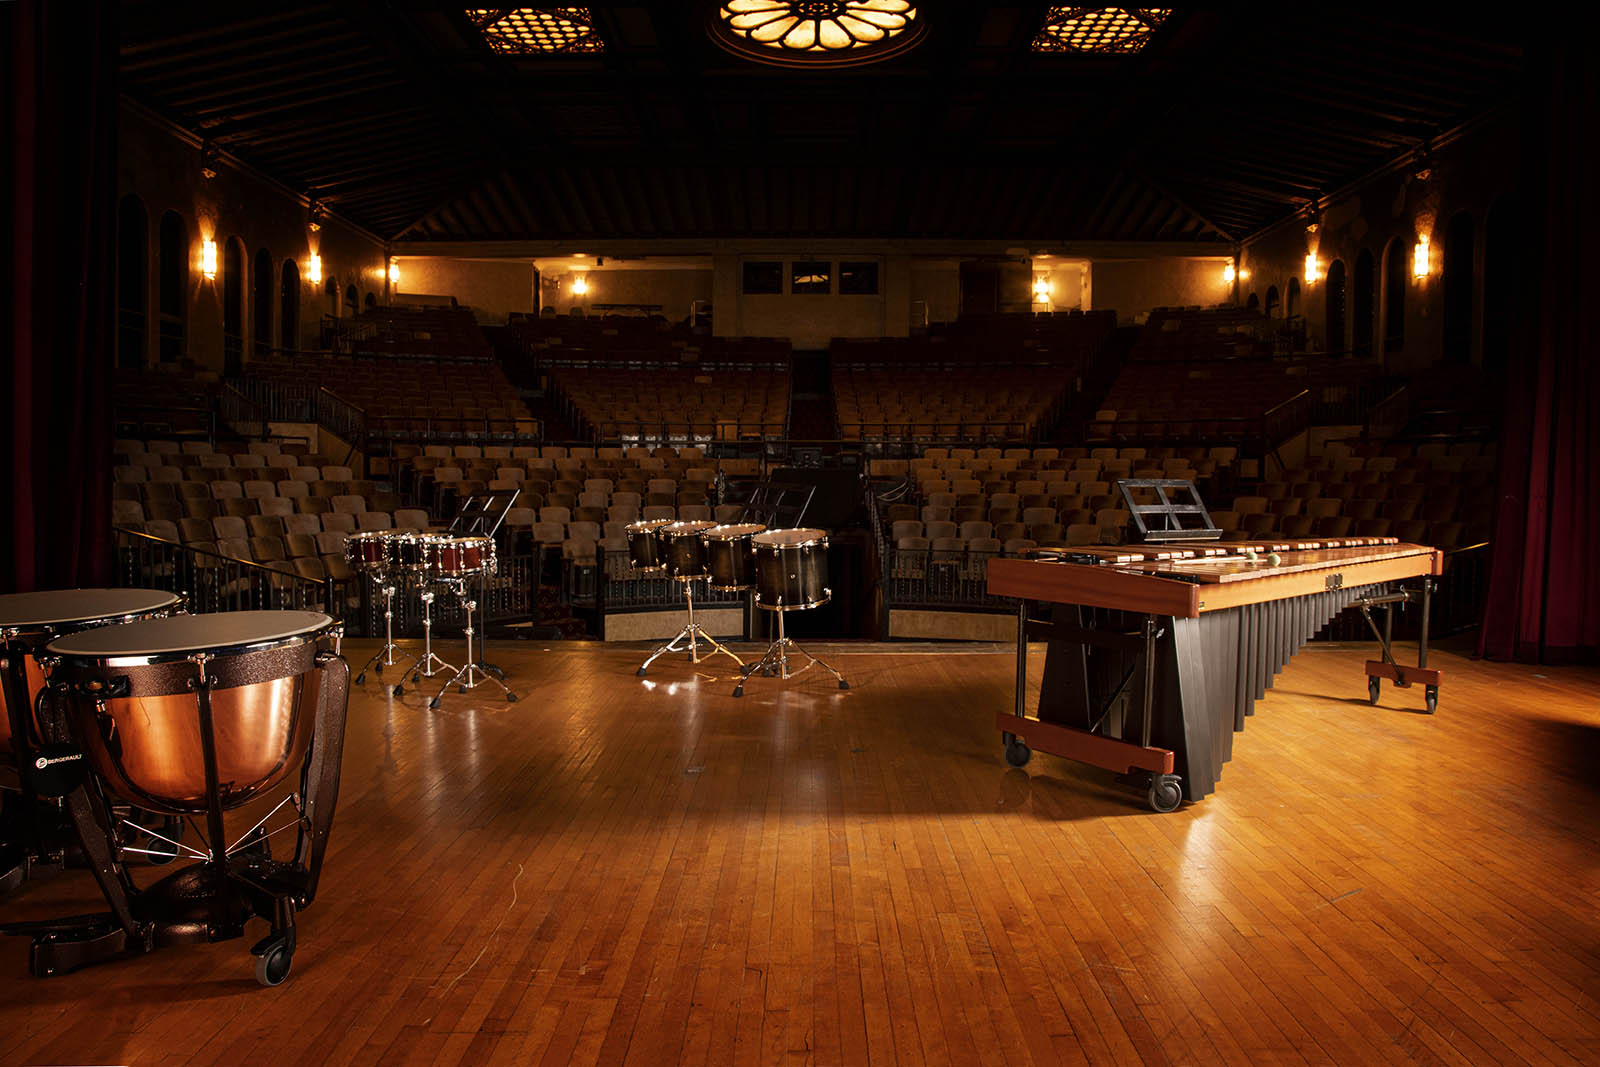 Percussion Instruments on Empty Stage